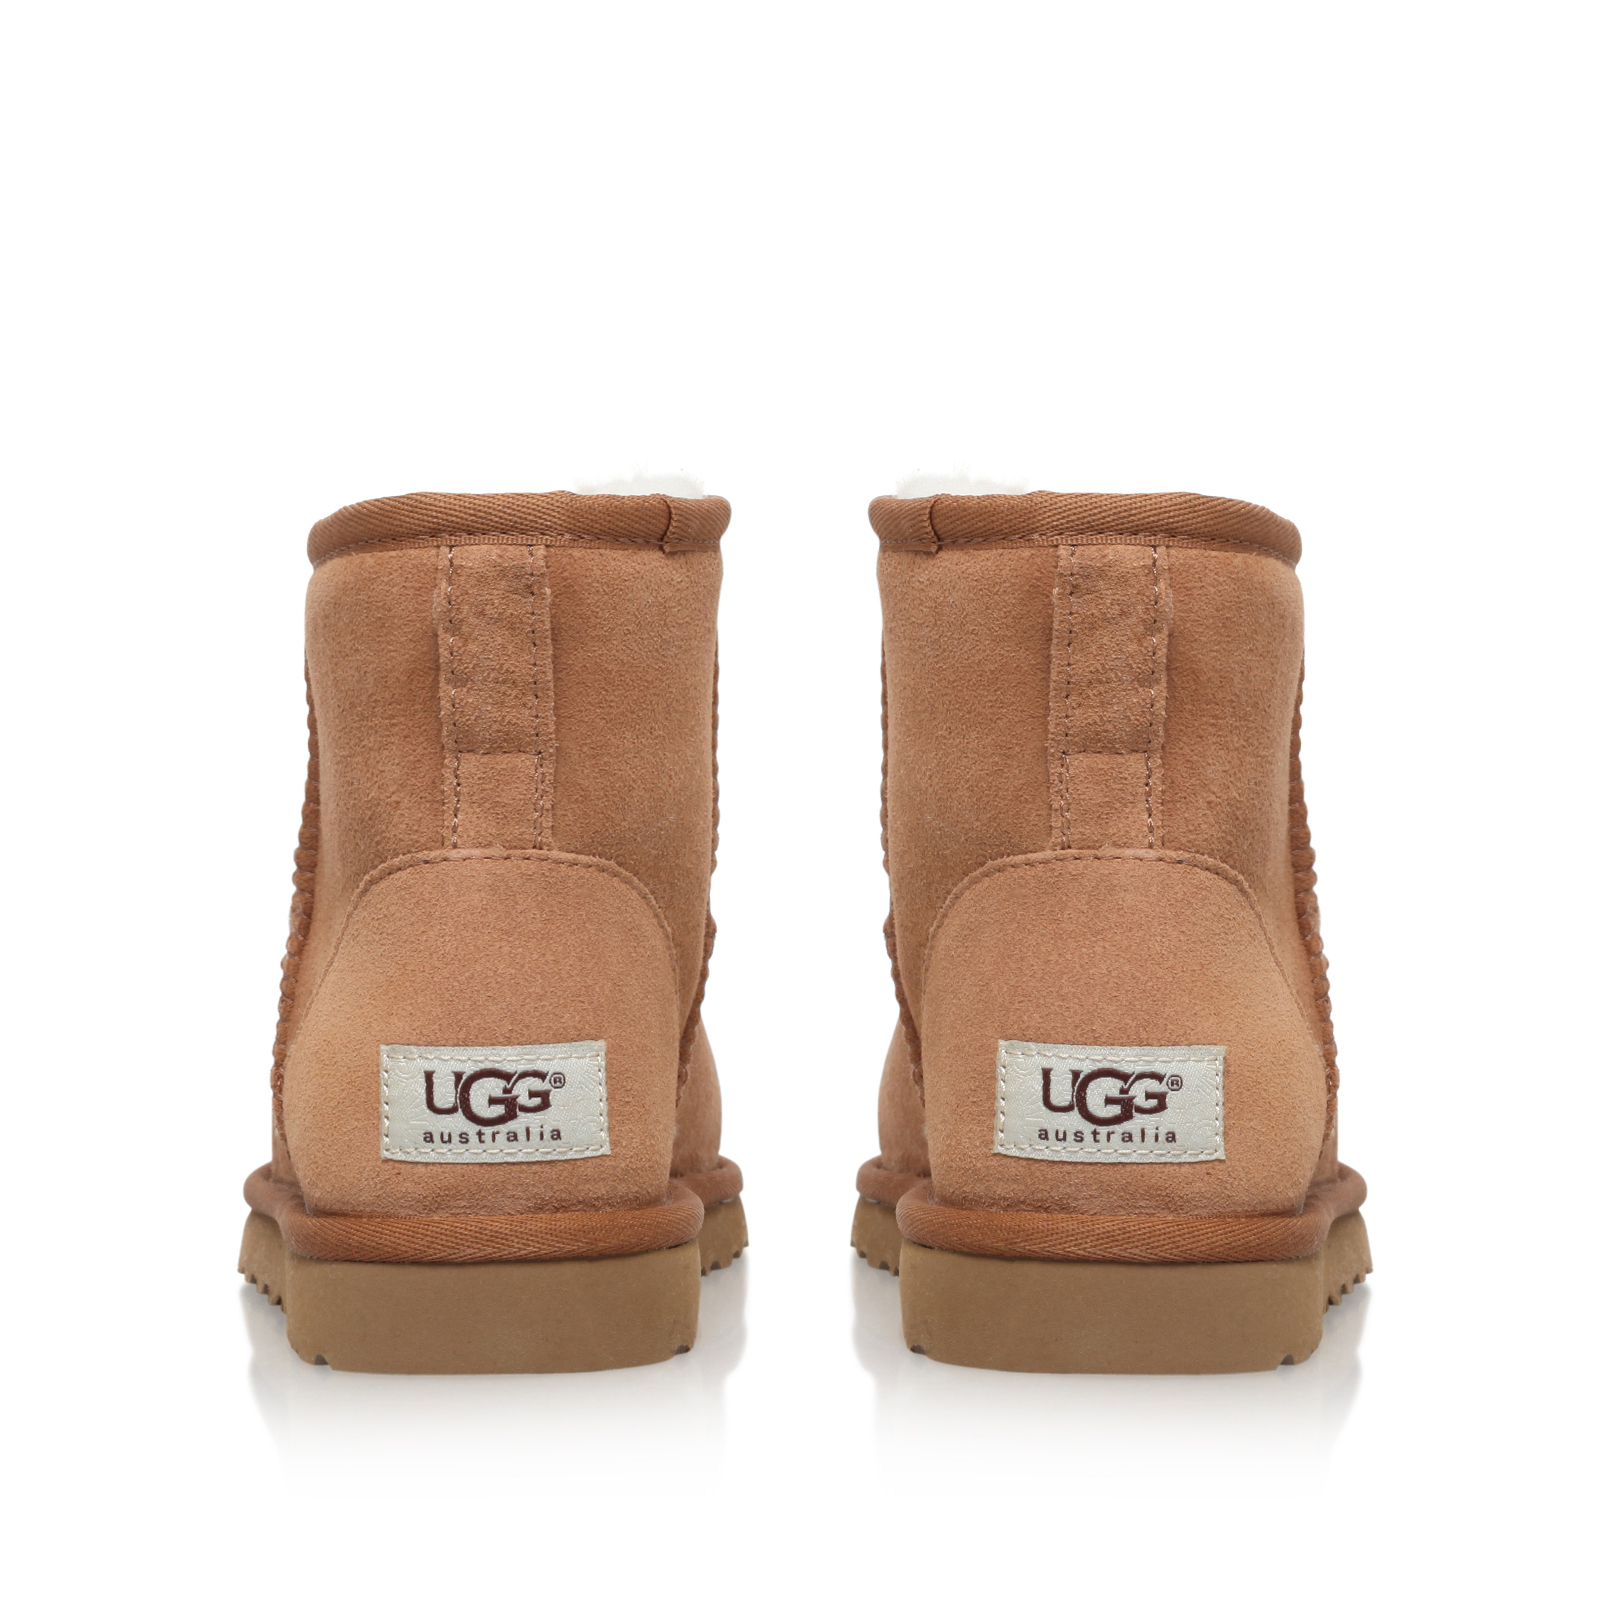 authorized ugg retailers